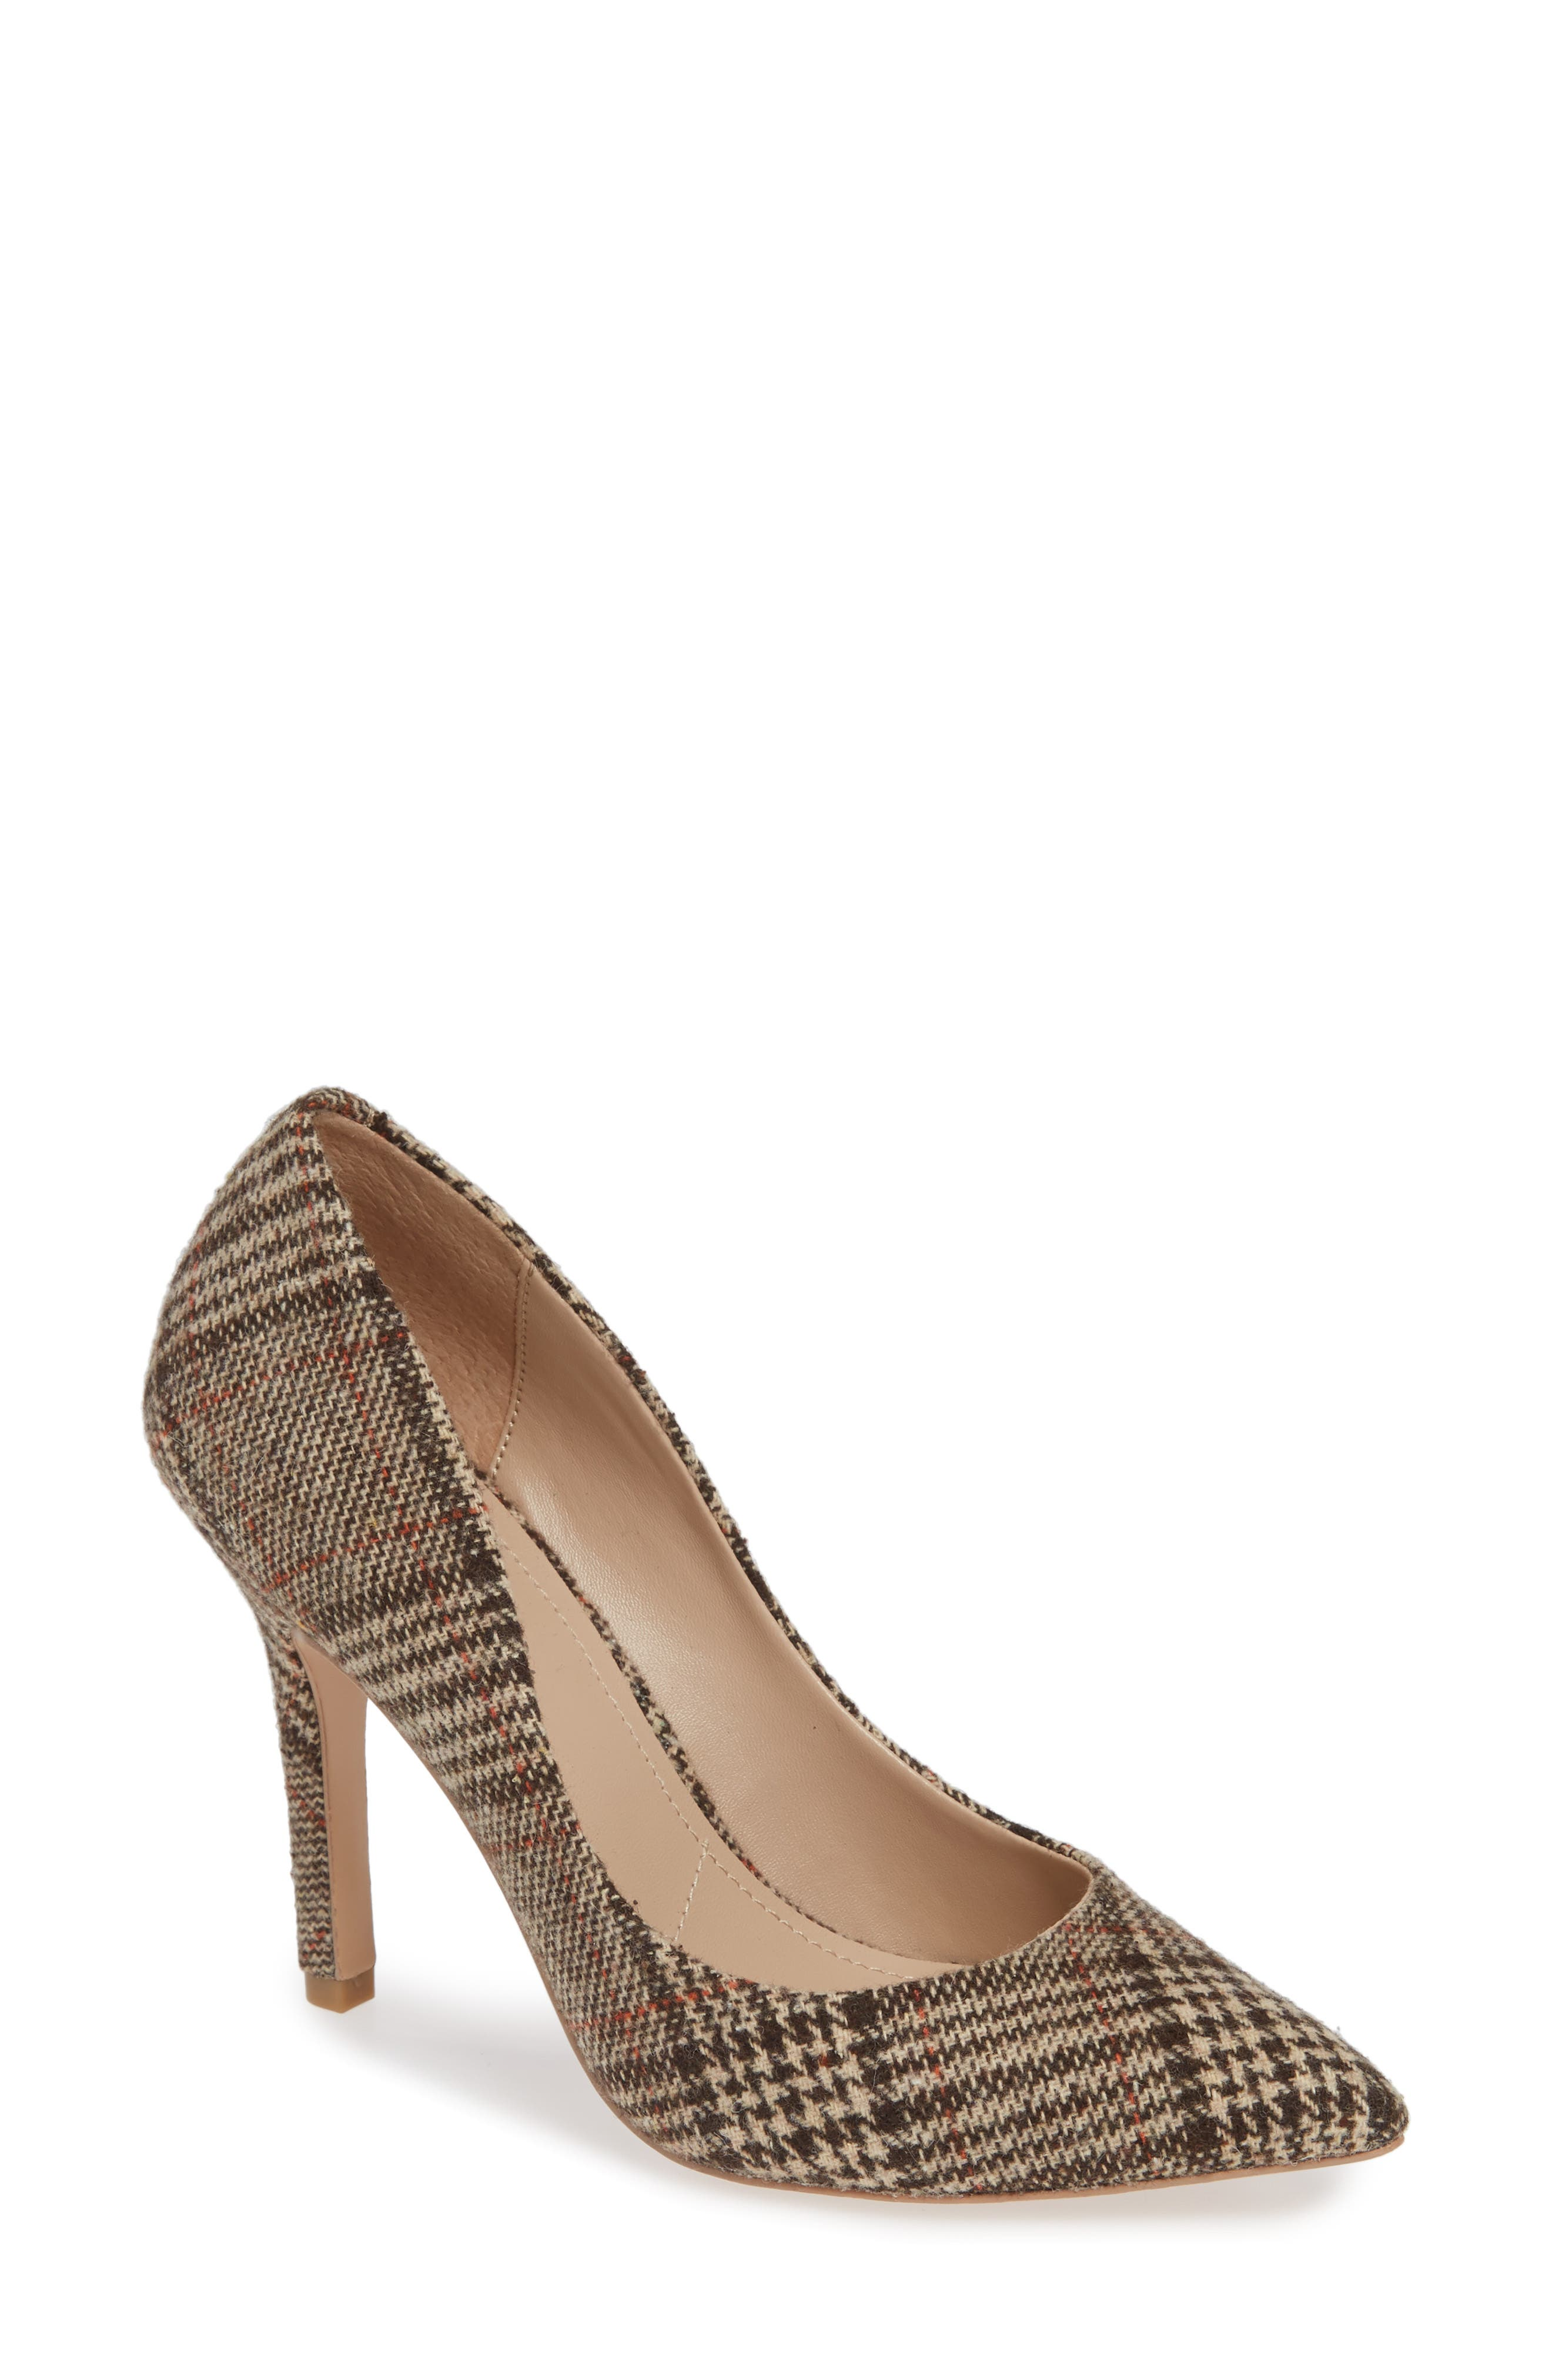 Maxx Pointy Toe Pump,                         Main,                         color, BROWN PLAID FABRIC